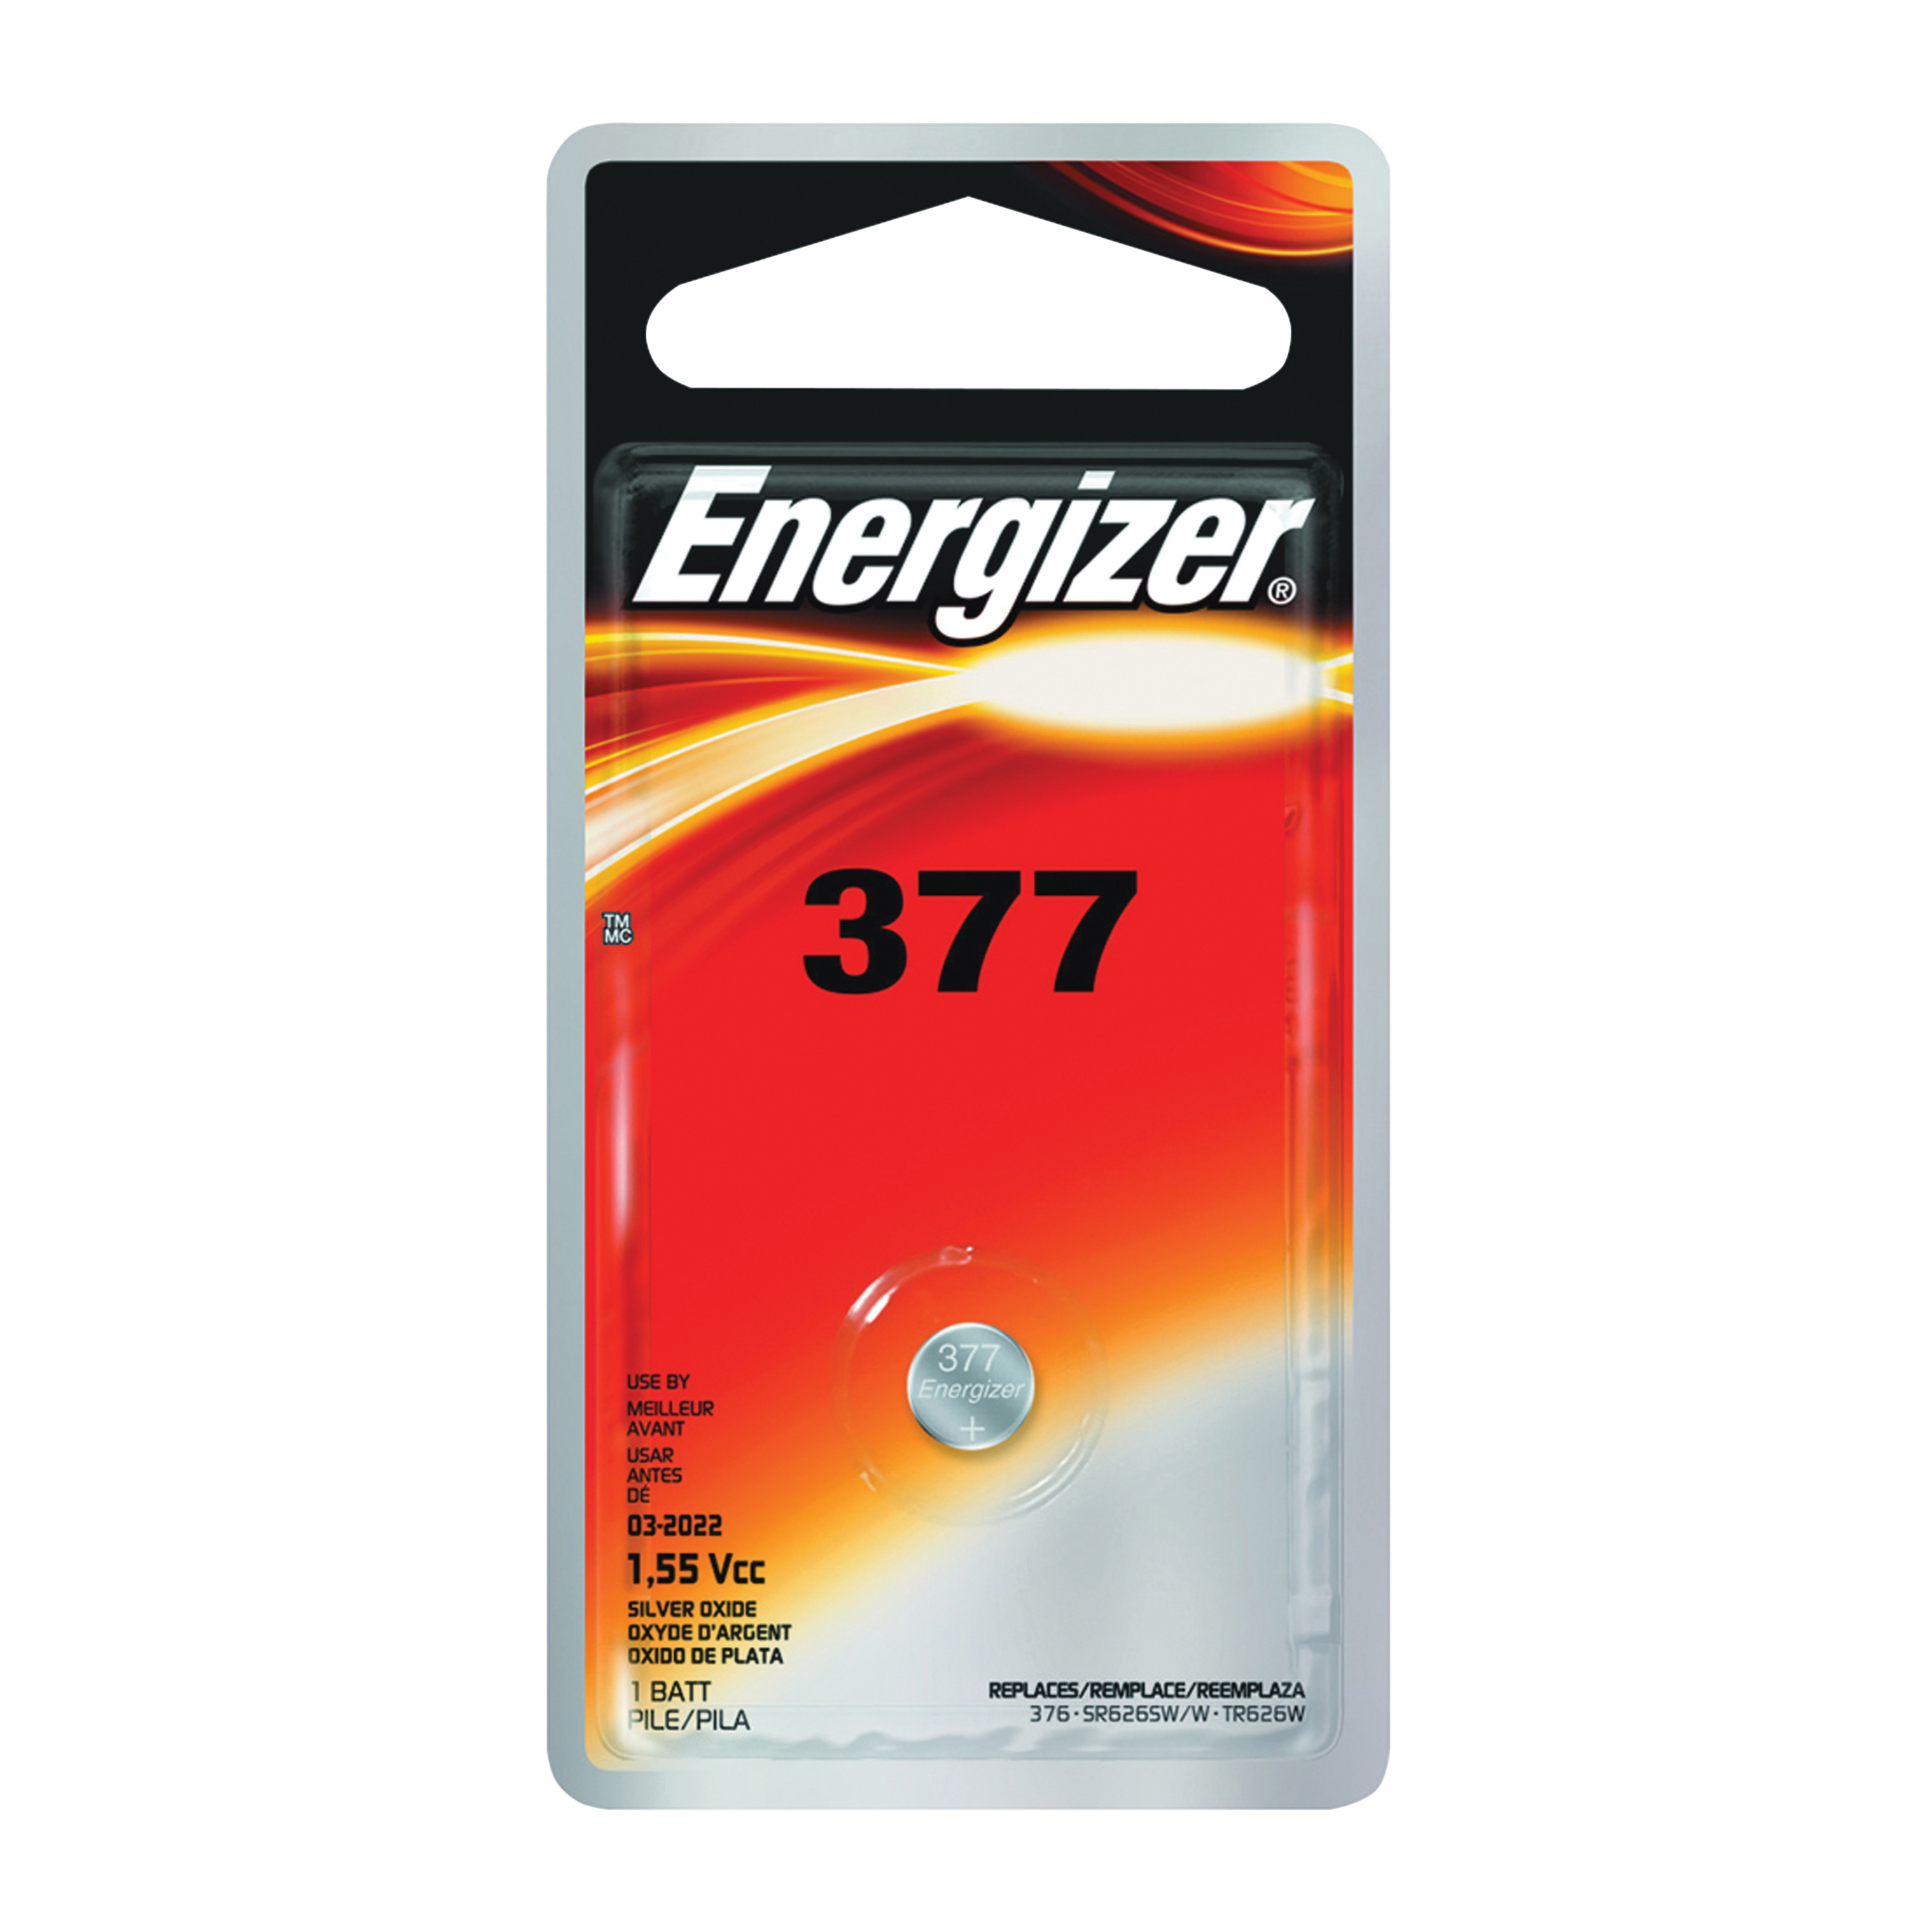 Picture of Energizer 377BPZ Coin Cell Battery, 1.5 V Battery, 24 mAh, 377 Battery, Silver Oxide